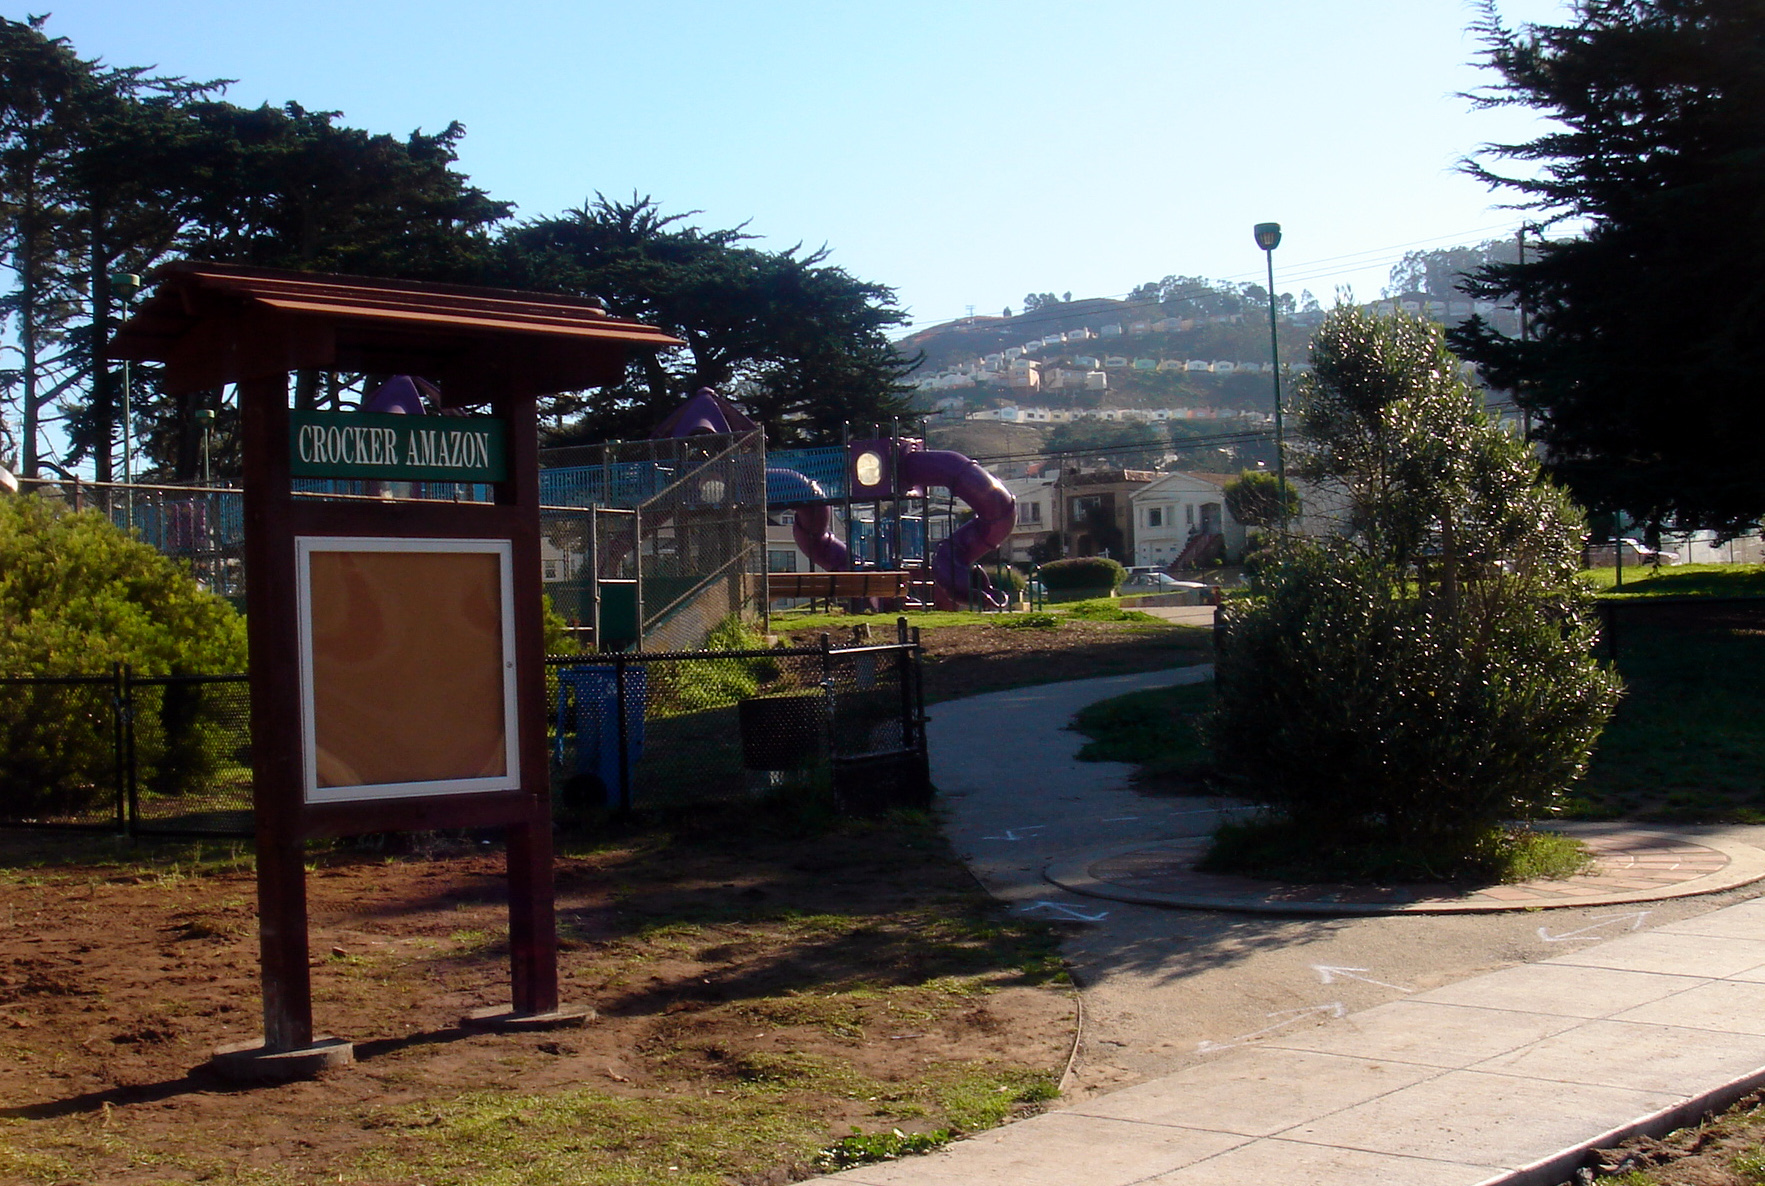 Crocker-Amazon Park has a play structure, sports fields, tennis and basketball courts, a recreation center, bocce court, picnic tables and playground.